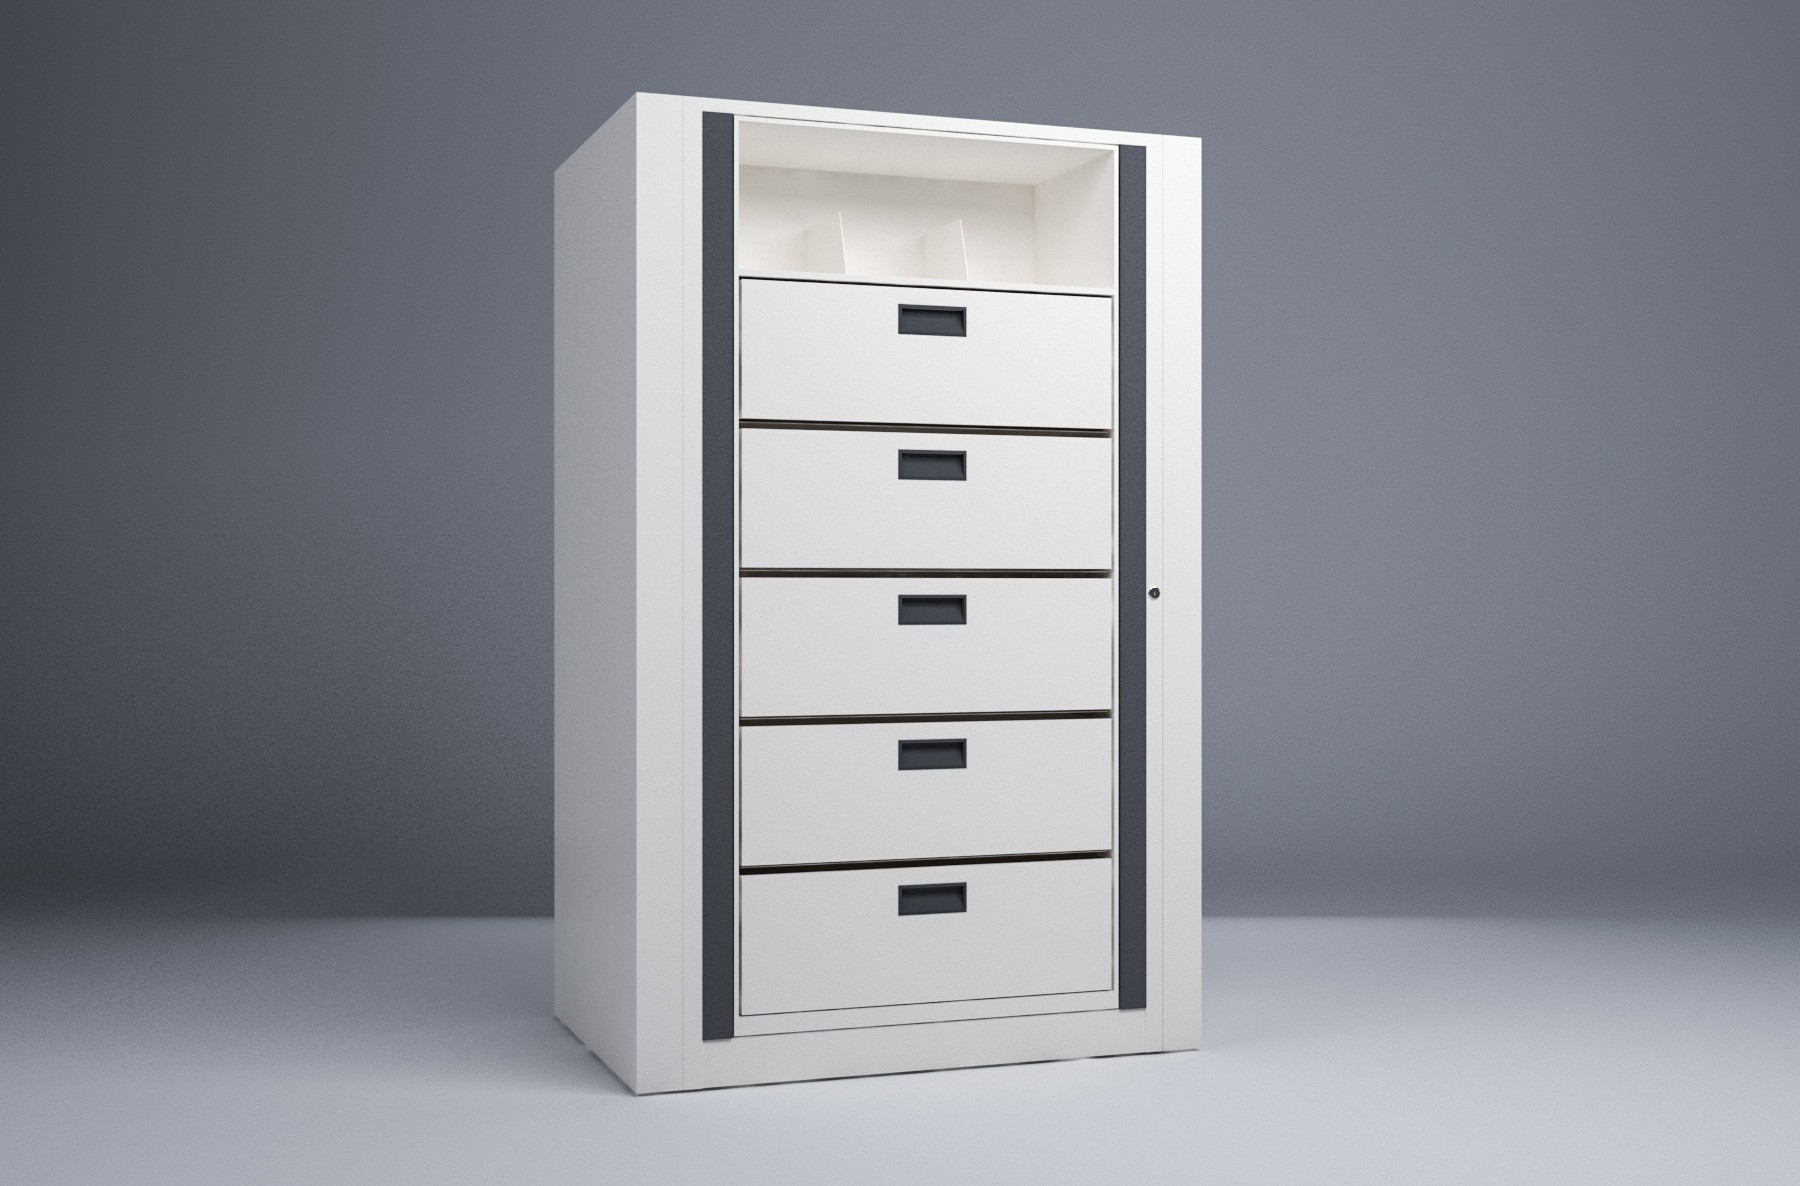 Rotary File-Legal-1 Starter 6 Tier-Drawers